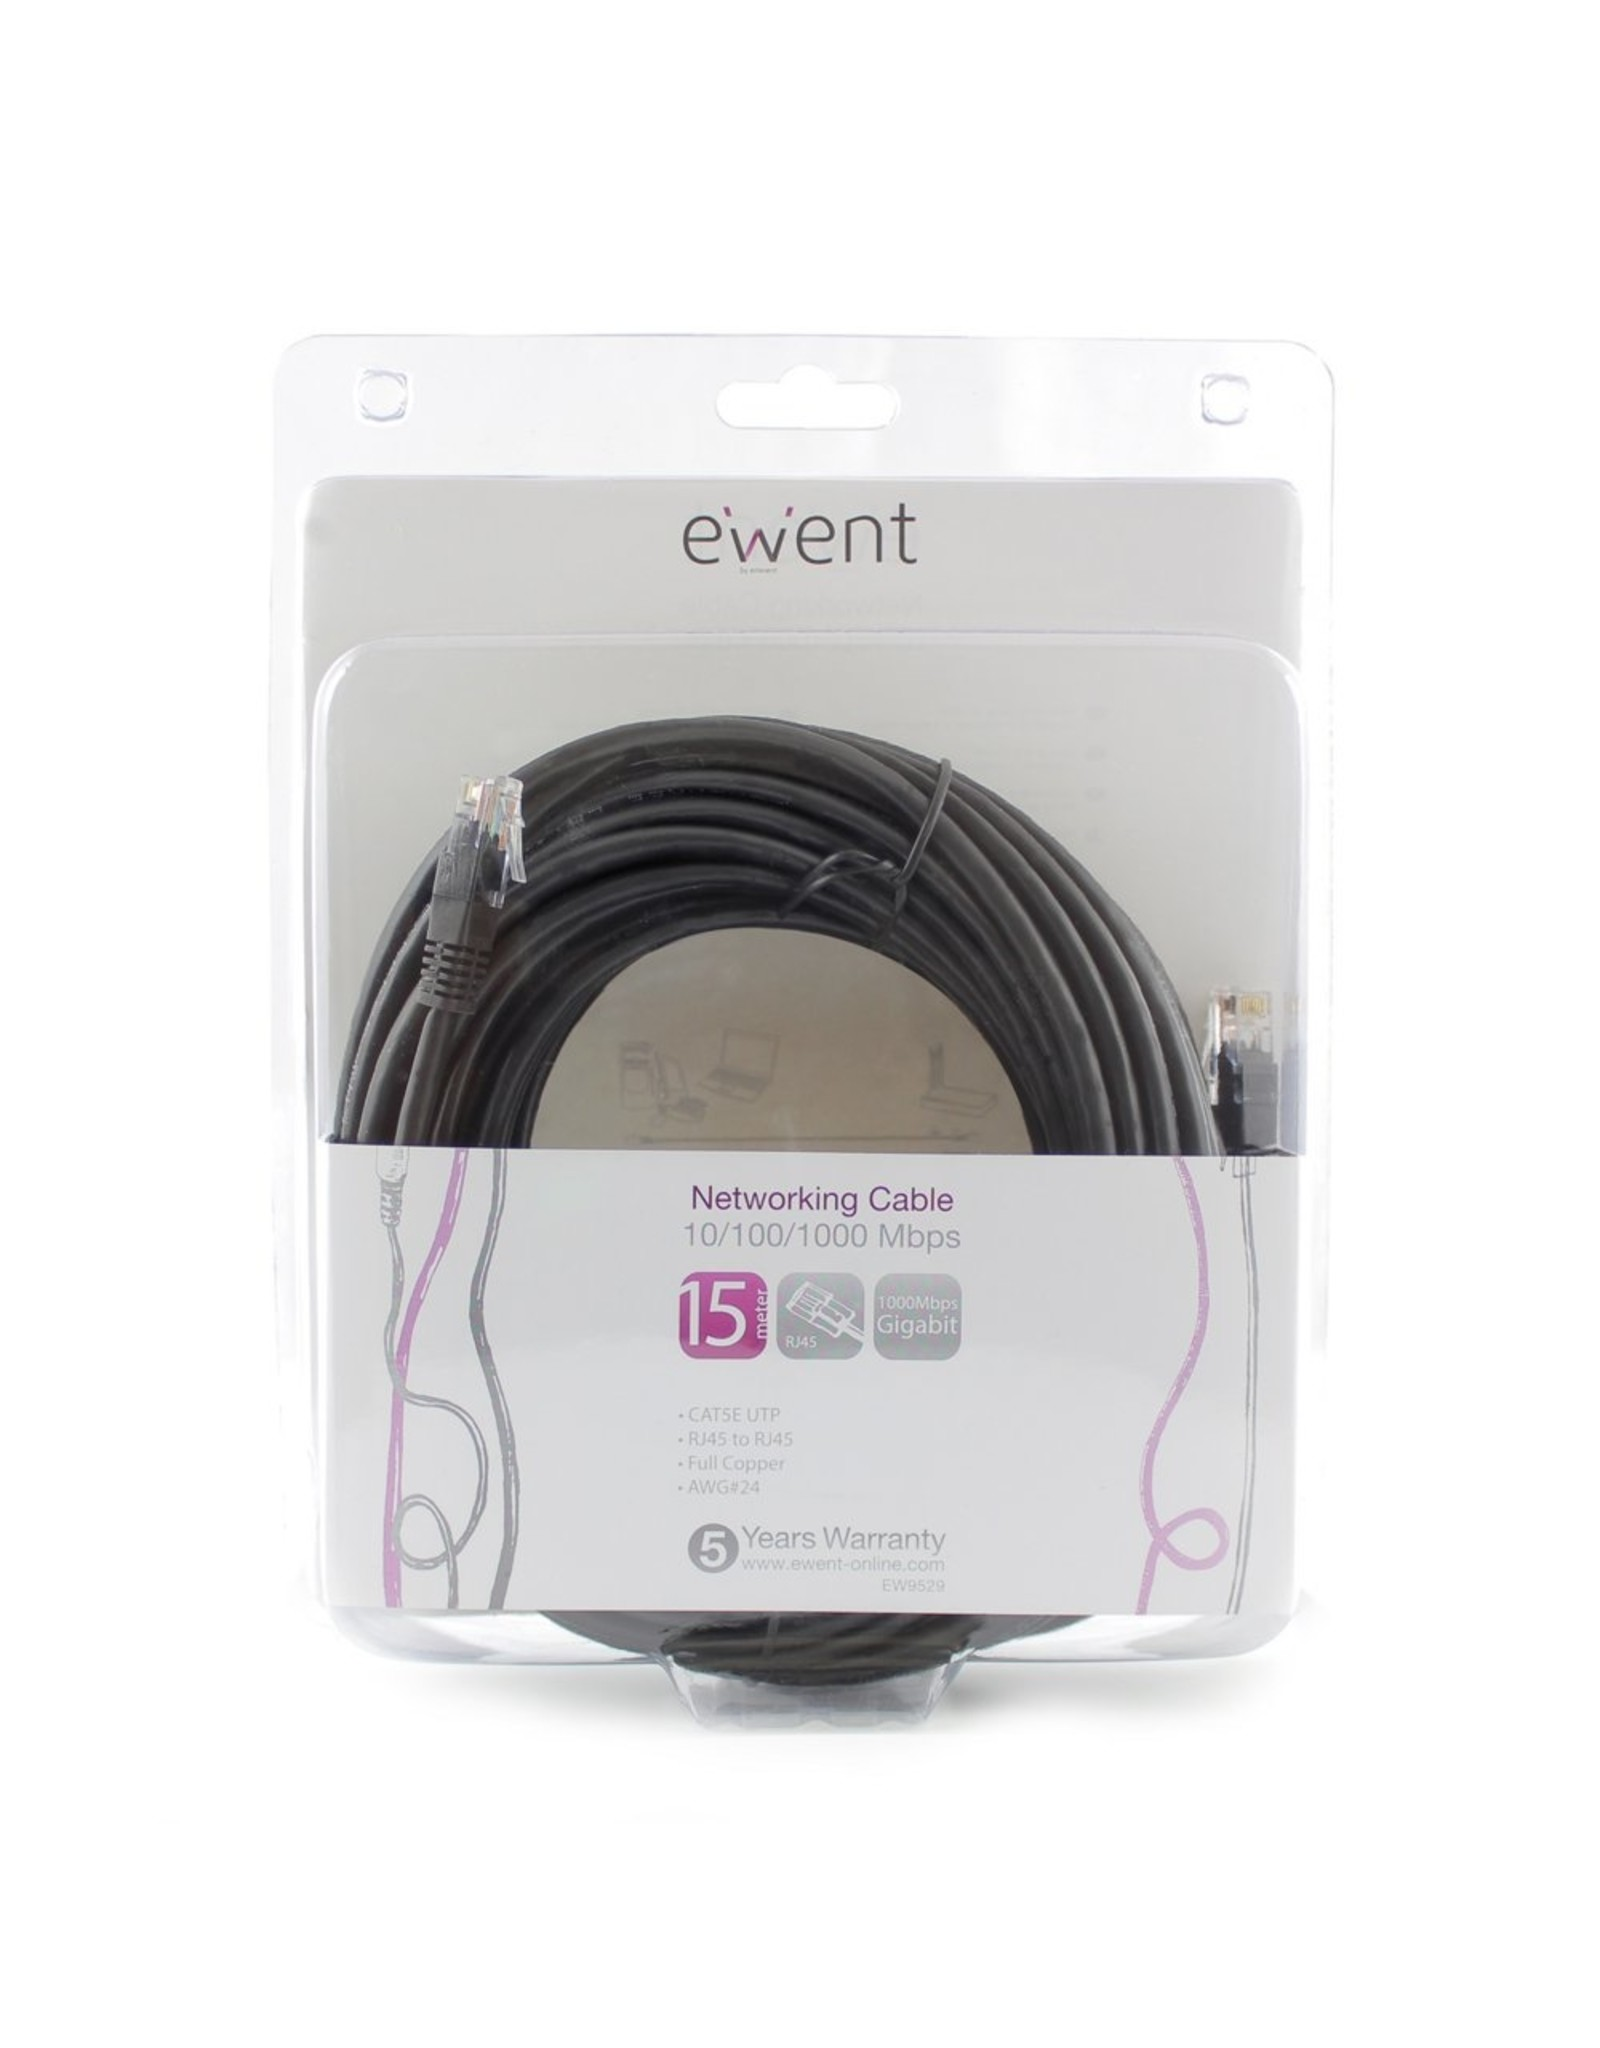 Ewent Networking Cable 15 Meter Black